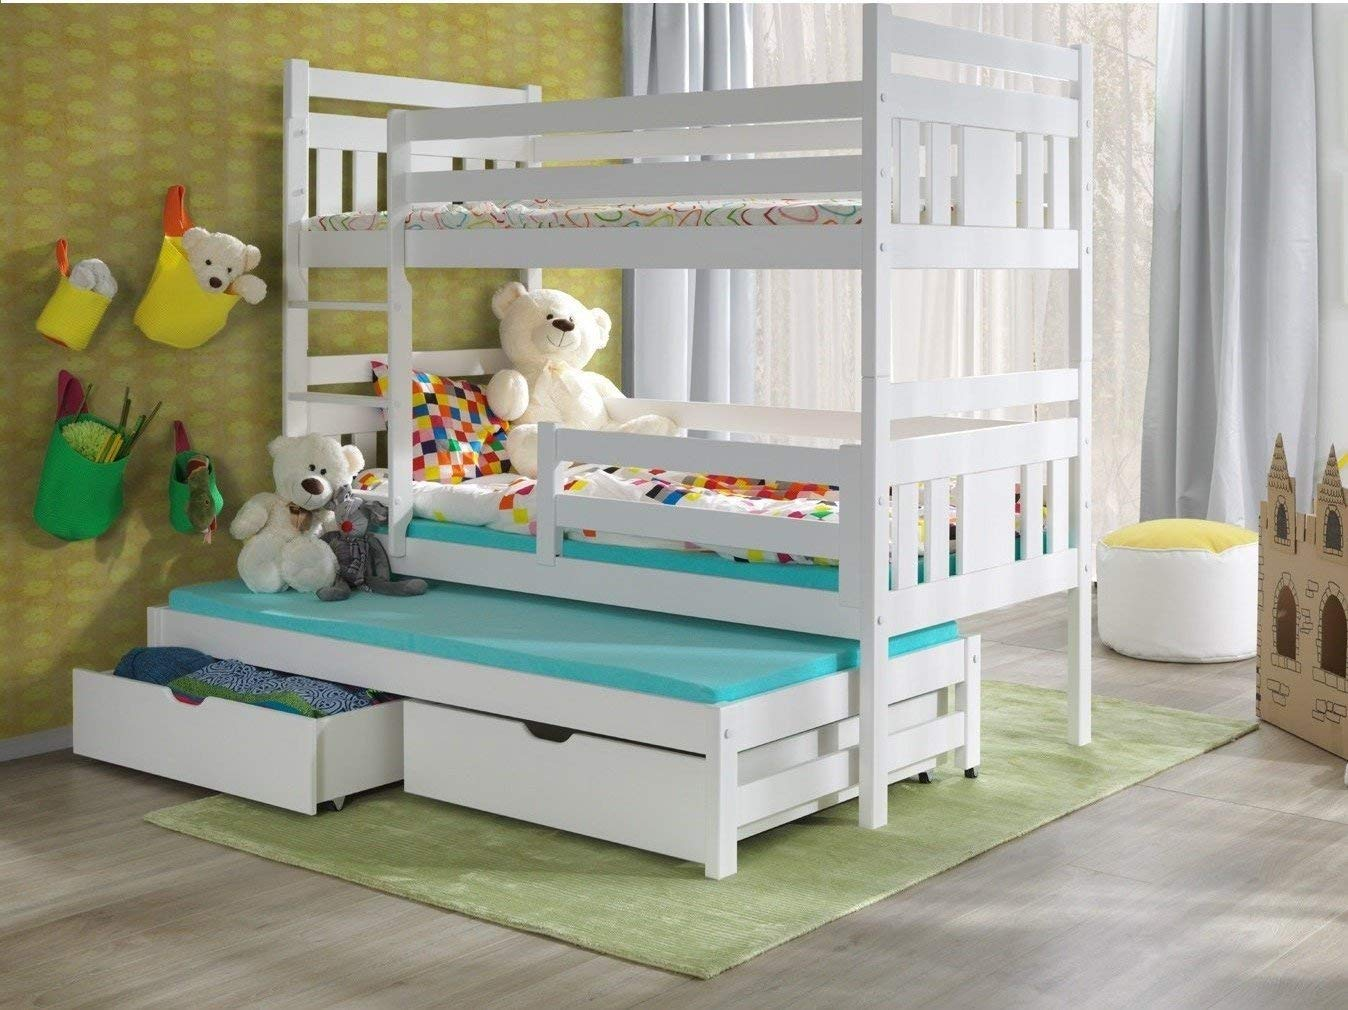 Craftatoz White Solid Wooden Bunk Bed Children And Adults Triple Bunk Beds With Mattress And Storage Drawers Buy Online In Grenada At Grenada Desertcart Com Productid 207188693